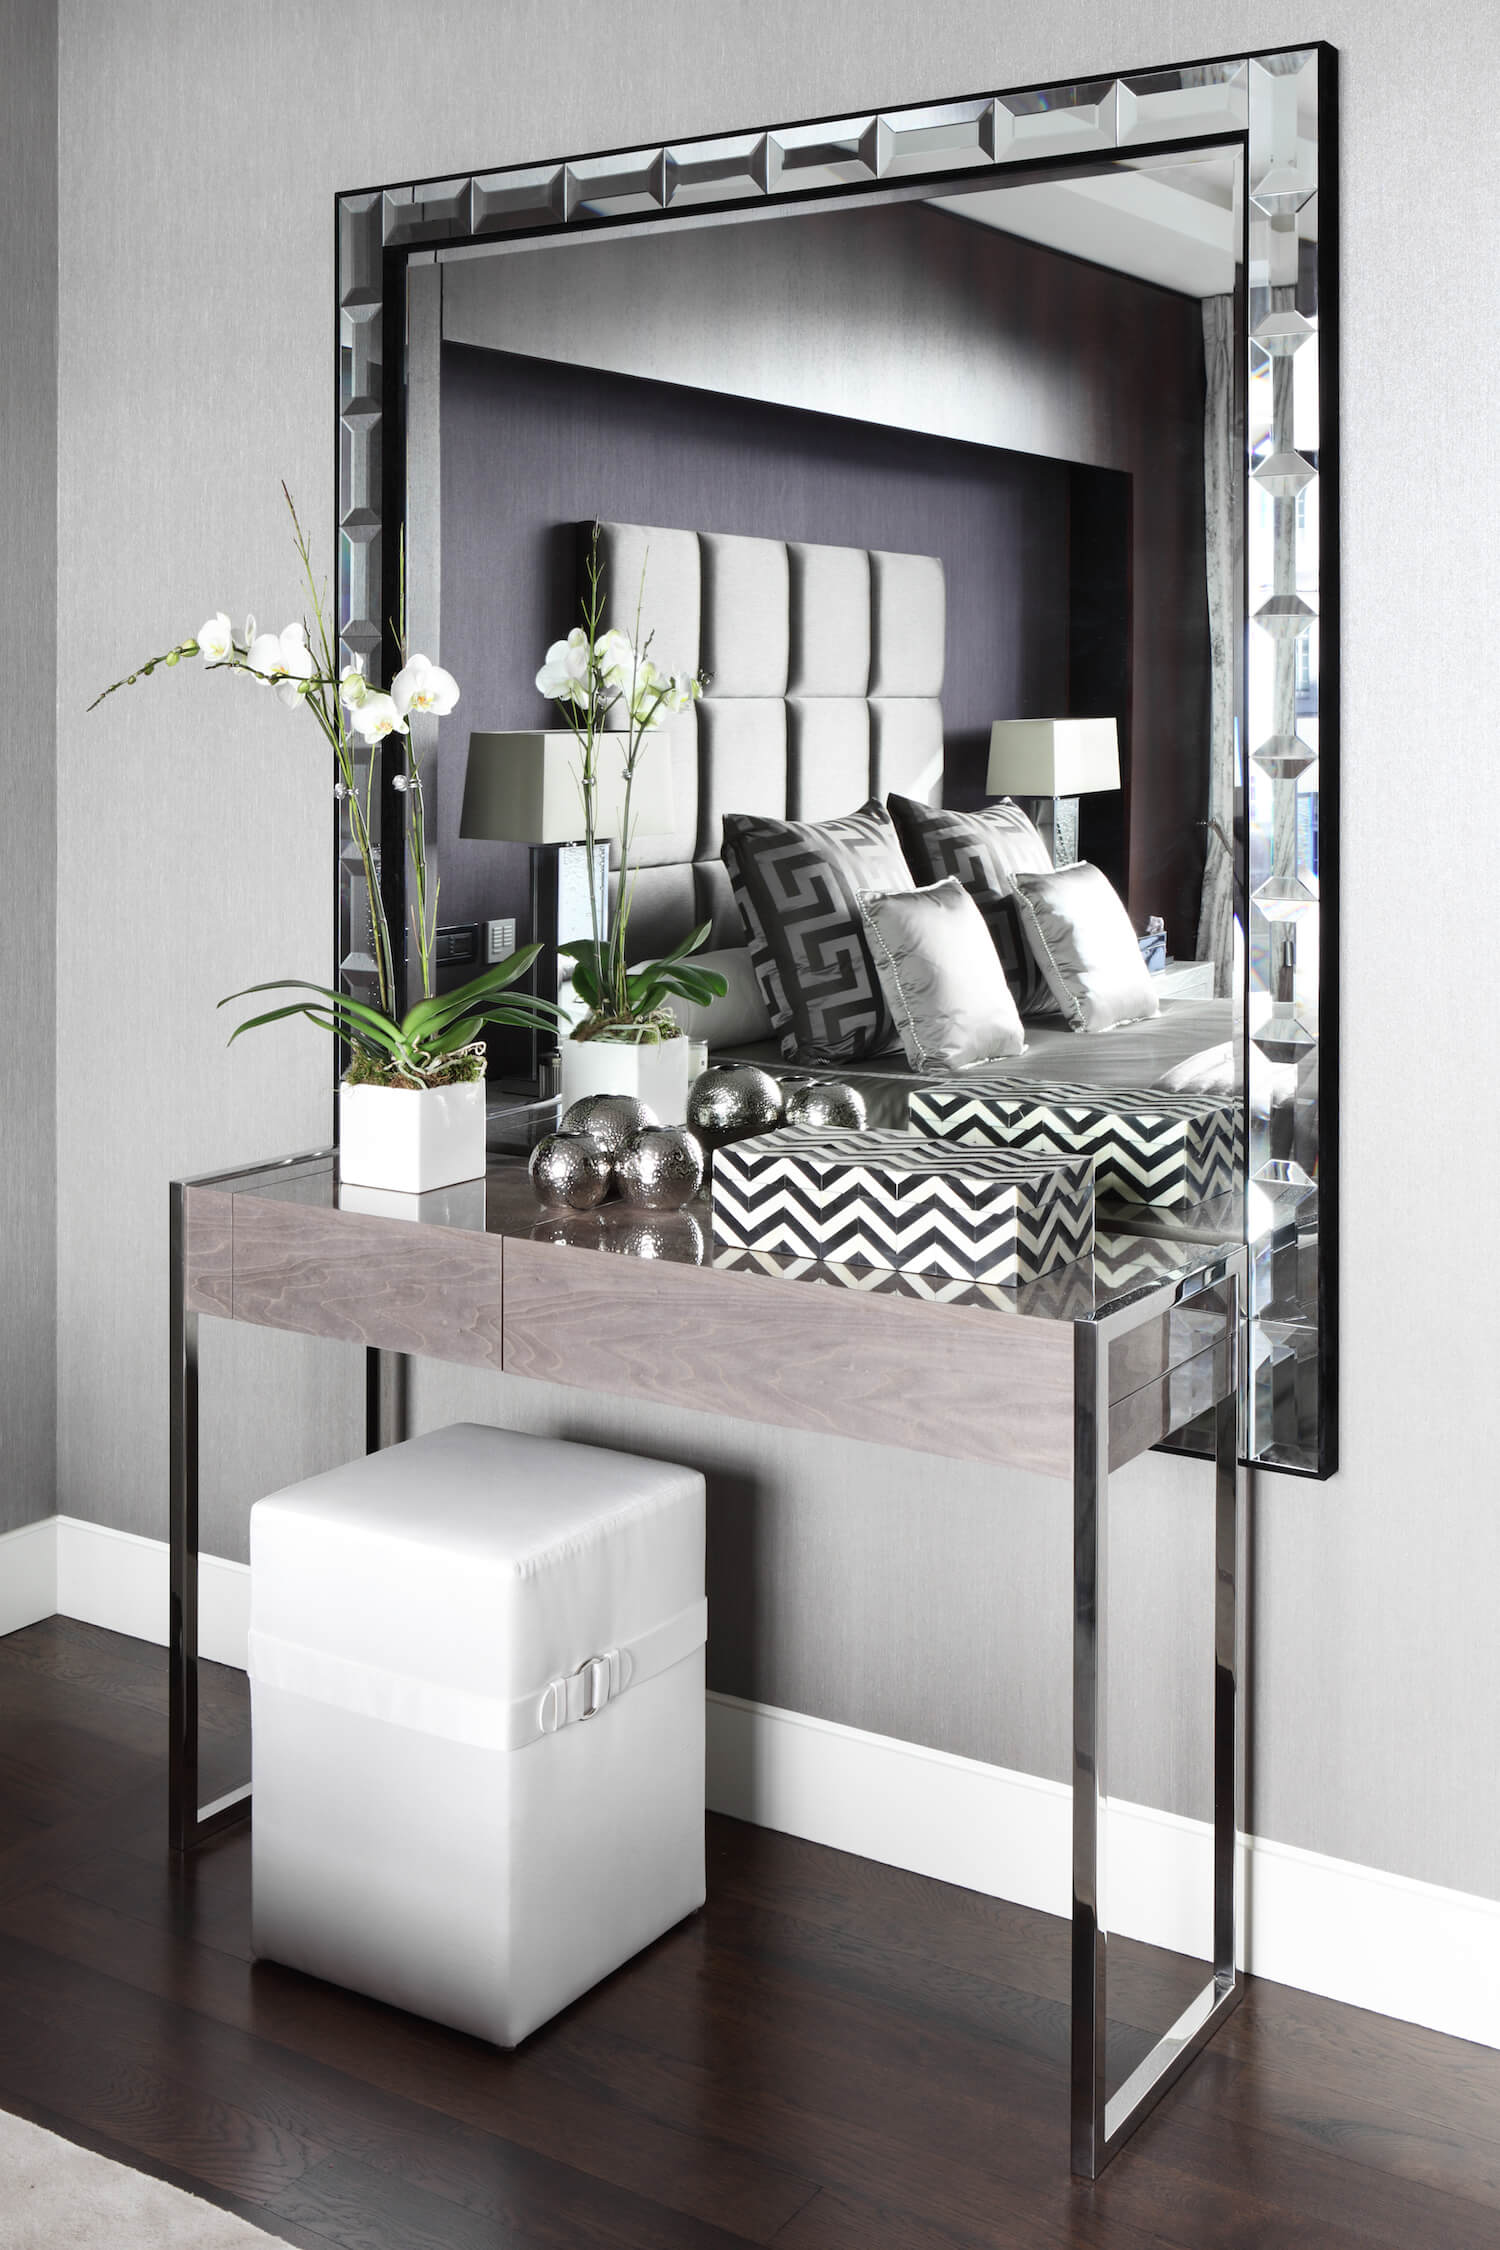 A bespoke dressing table in high gloss veneer with velvet lined storage is poised on delicate chrome legs, aiming for an air of feminine elegance.